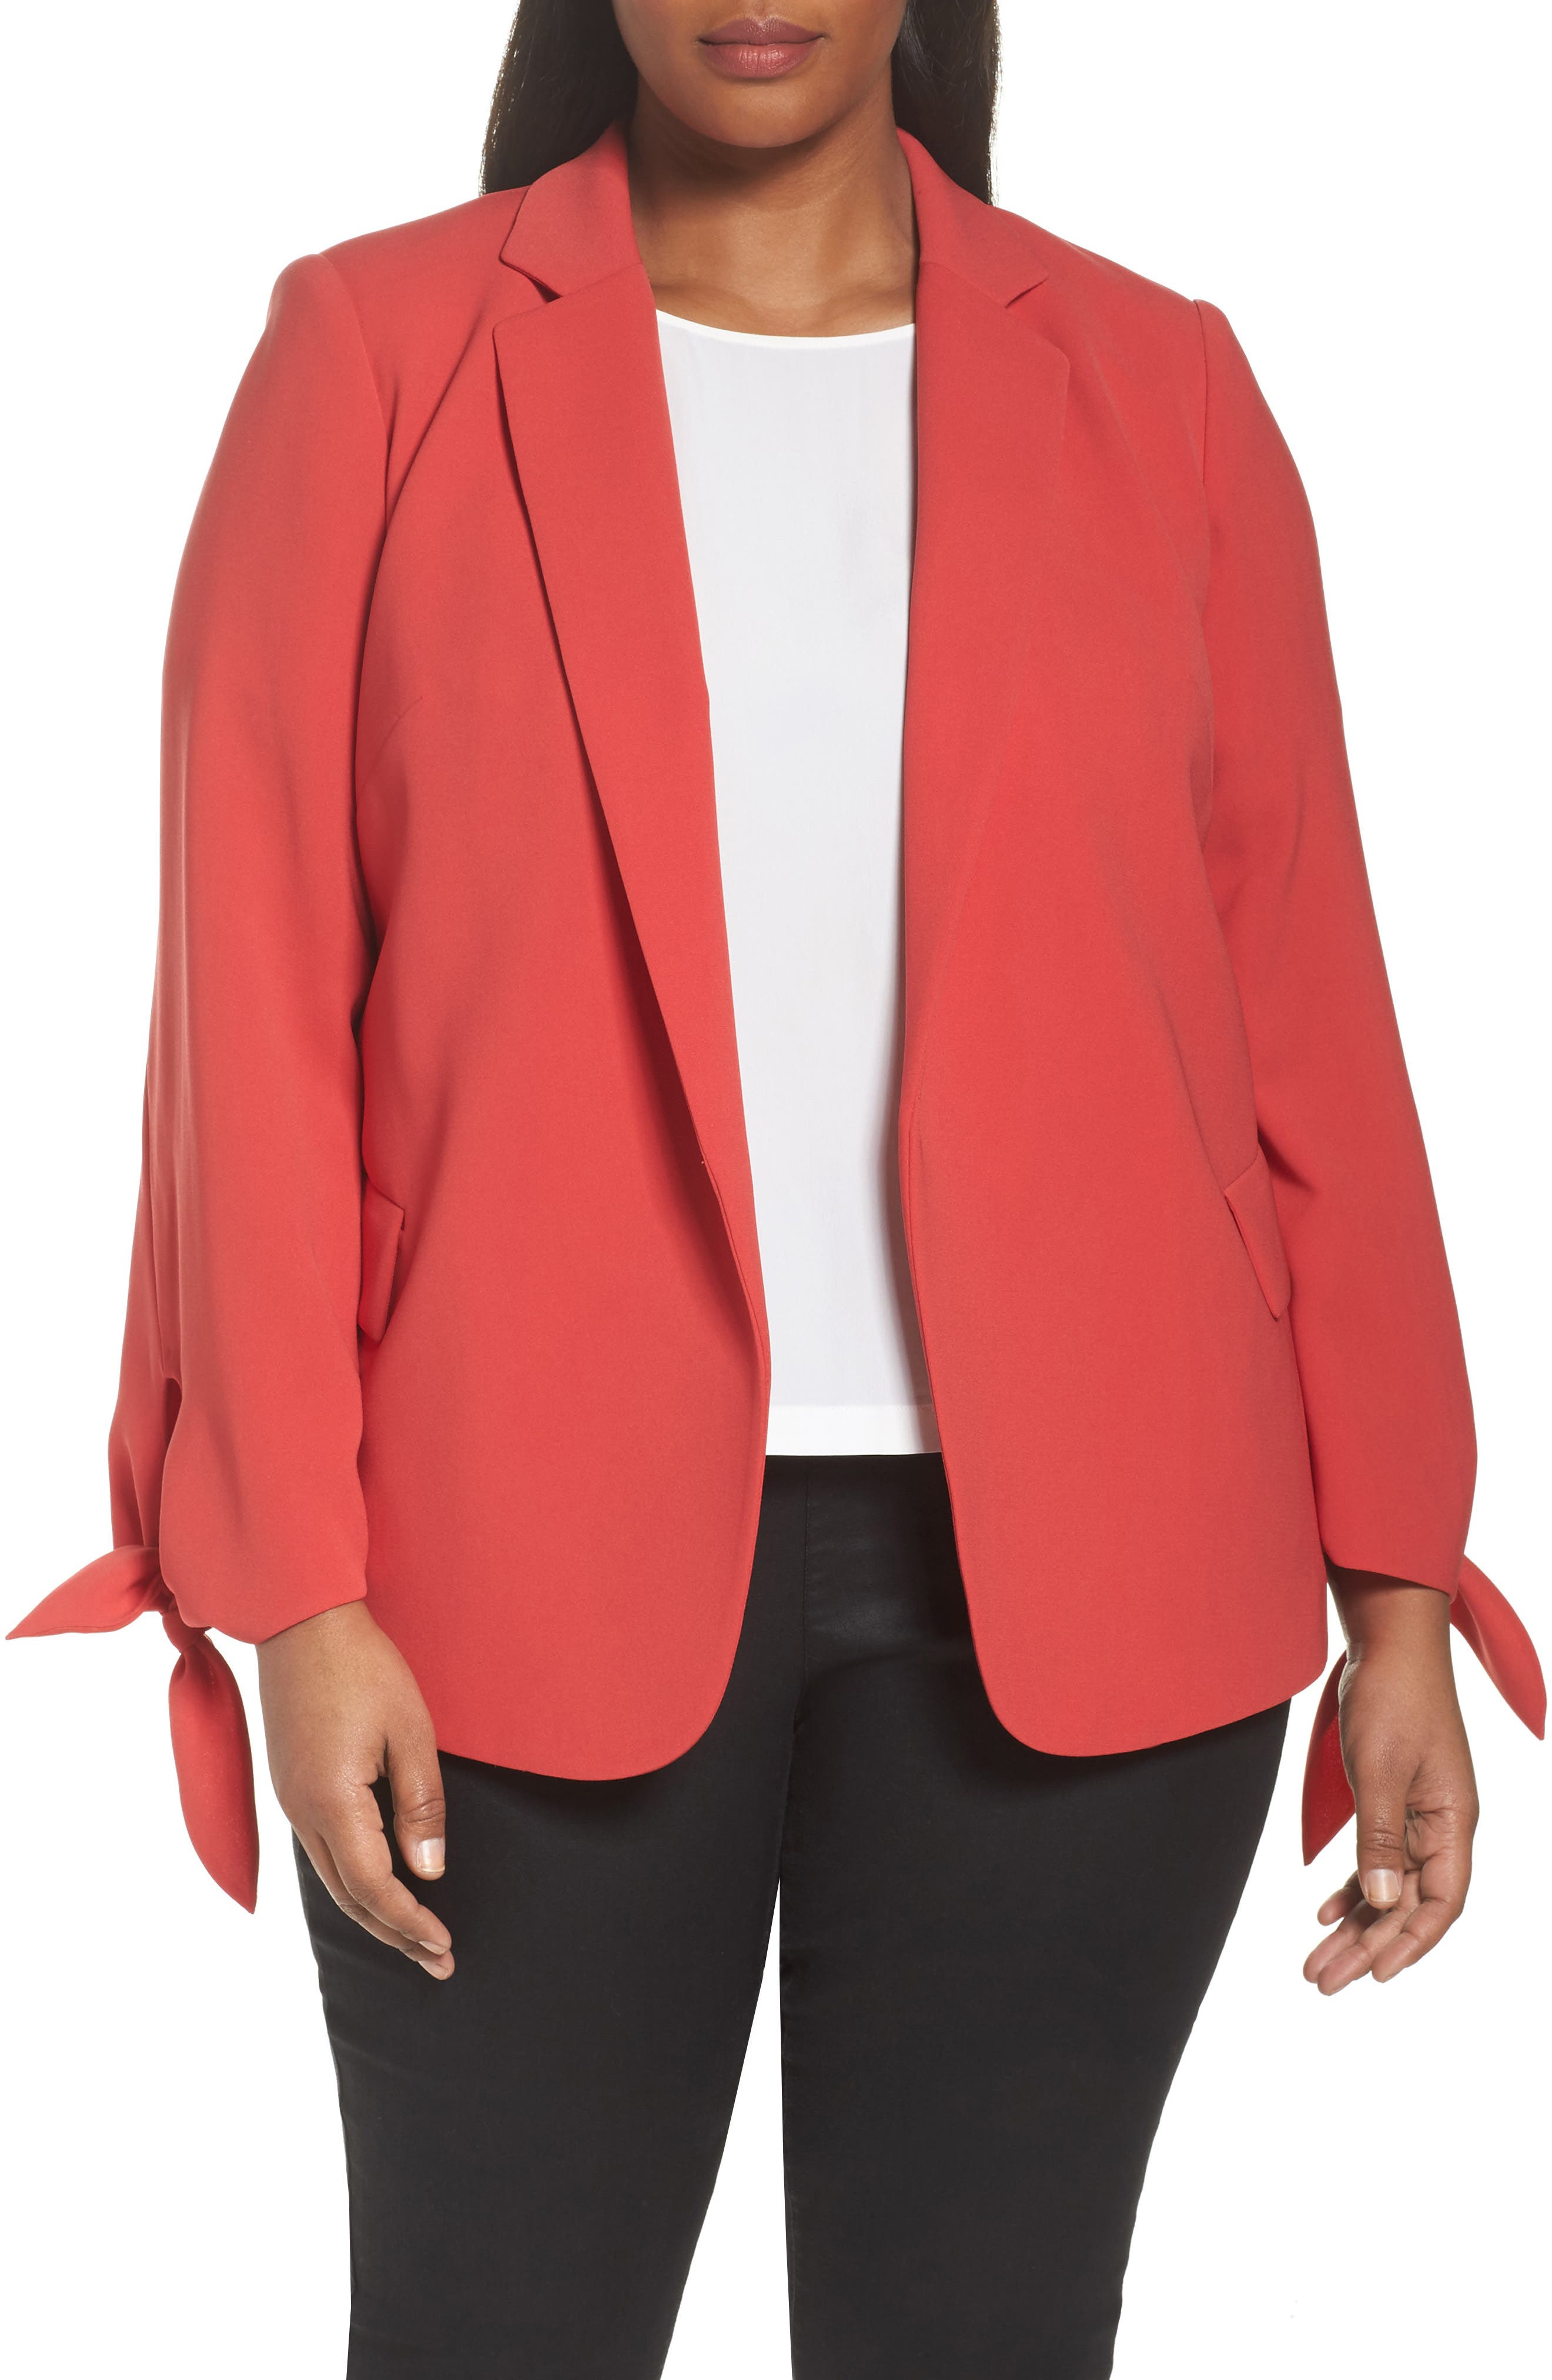 Bria Finesse Crepe Jacket,                             Main thumbnail 1, color,                             Salsa